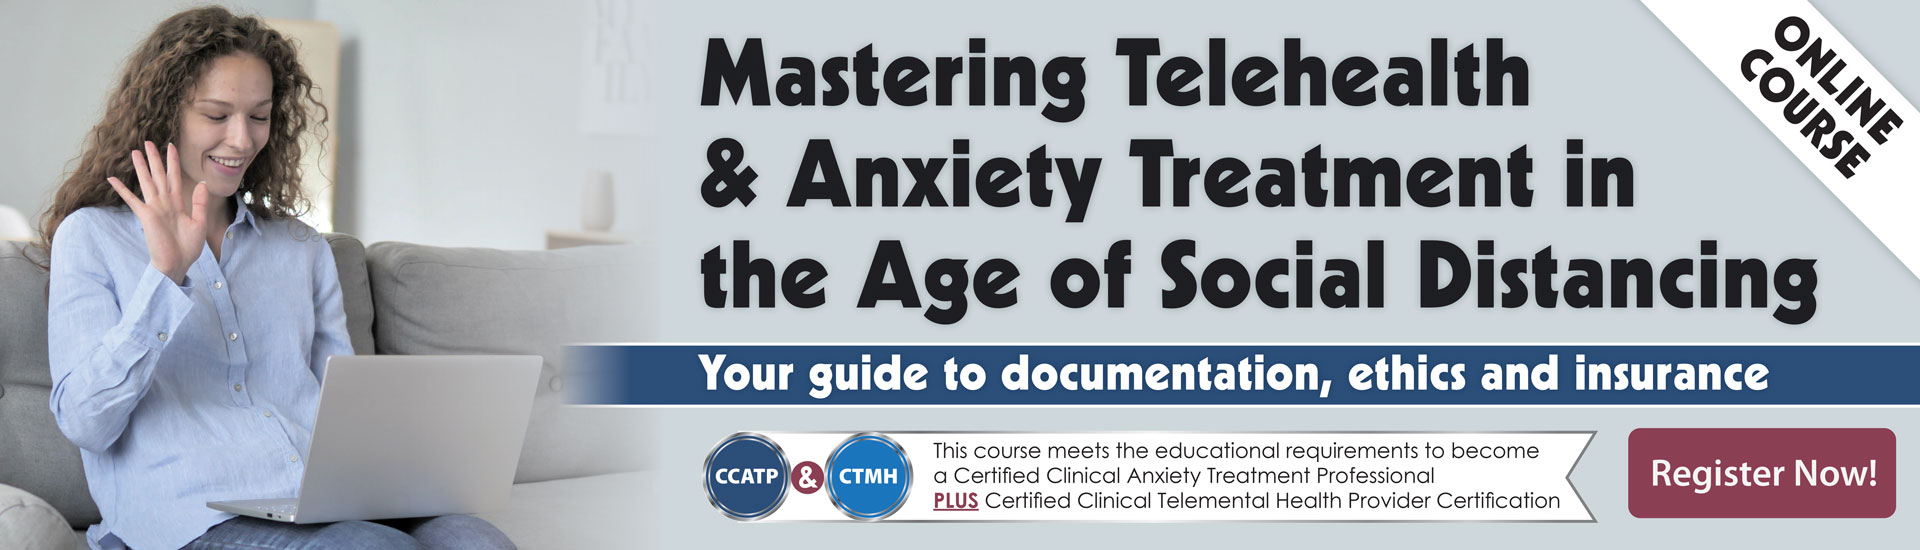 Mastering Telehealth & Anxiety Treatment in the Age of Social Distancing